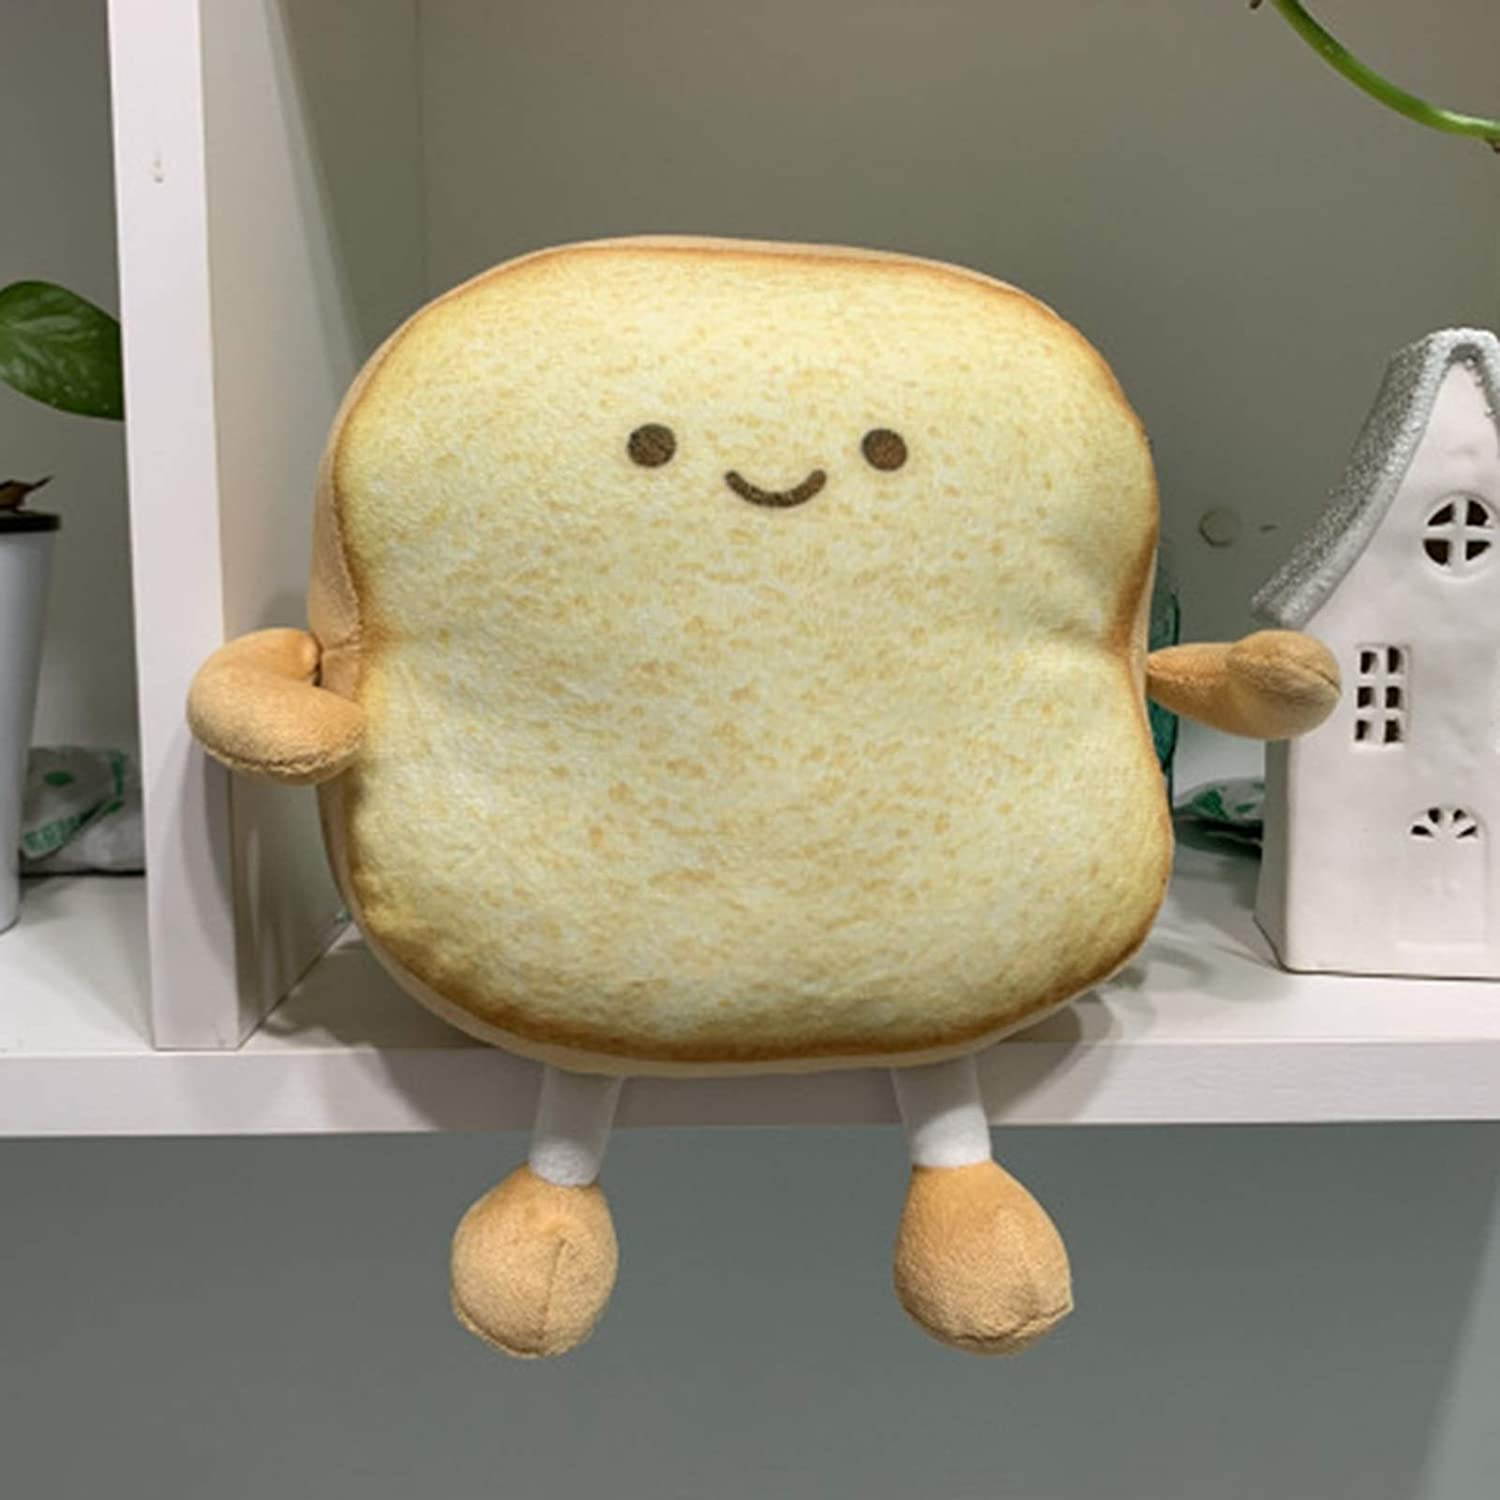 helegeSONG Animated Bread Plush Toast Pillow Toast Plush Stuffed Toast Animated Stuffed Bread Toy Food Plushies Funny Pillow Home Sofa Decor Dark Brown S